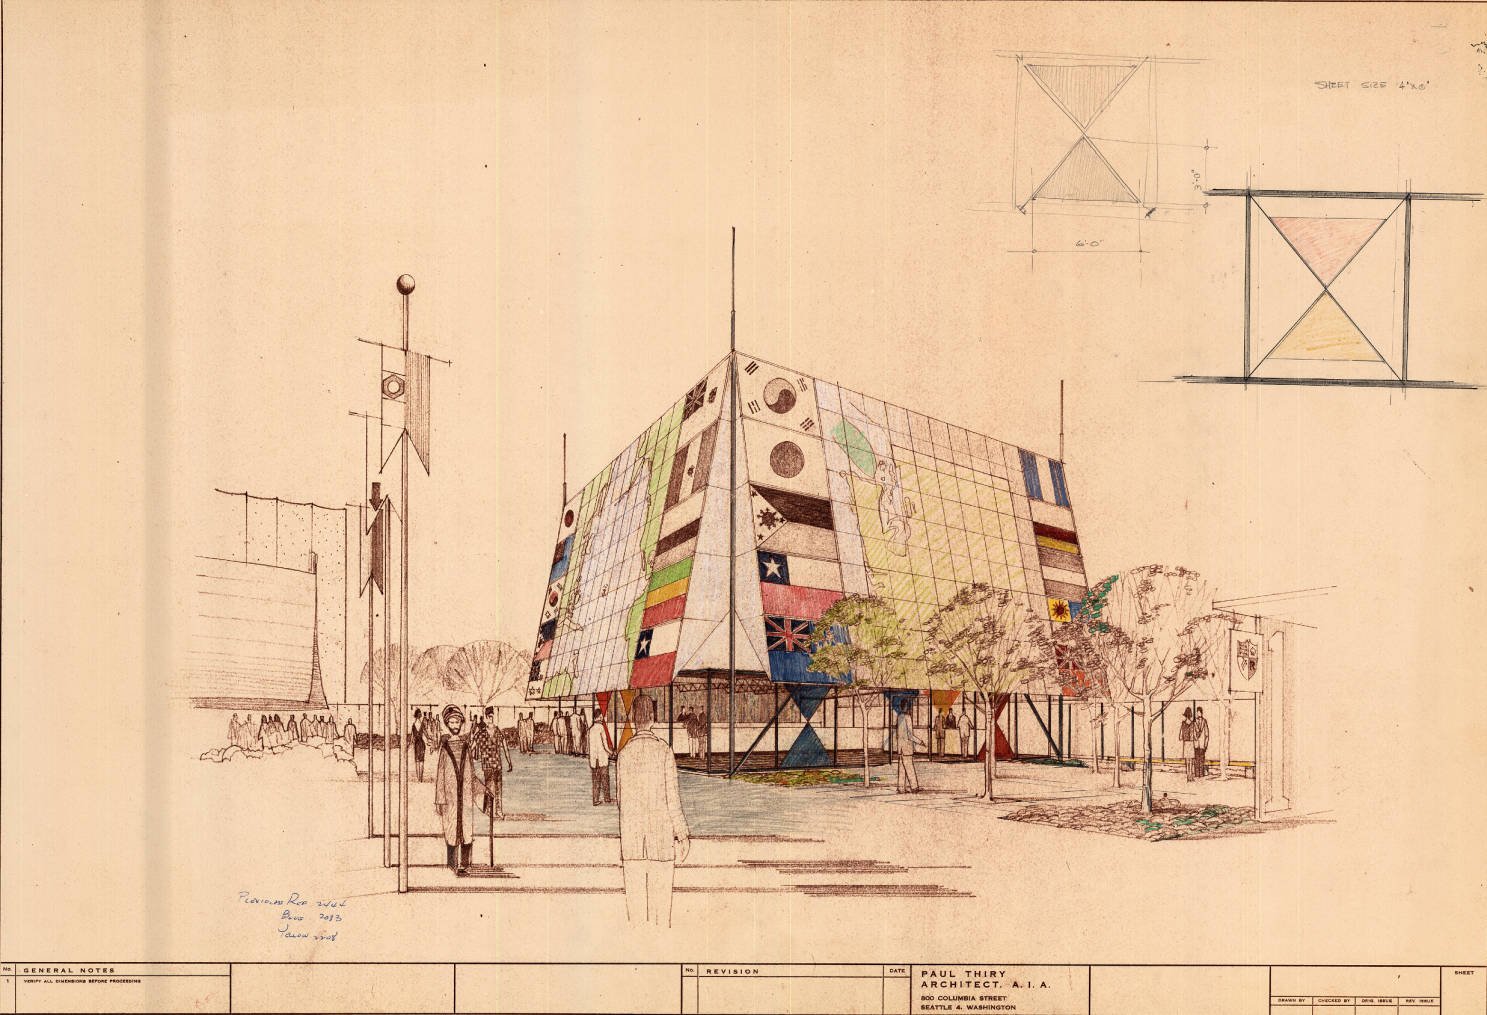 Seattle First National Bank - design plan of canvas awning